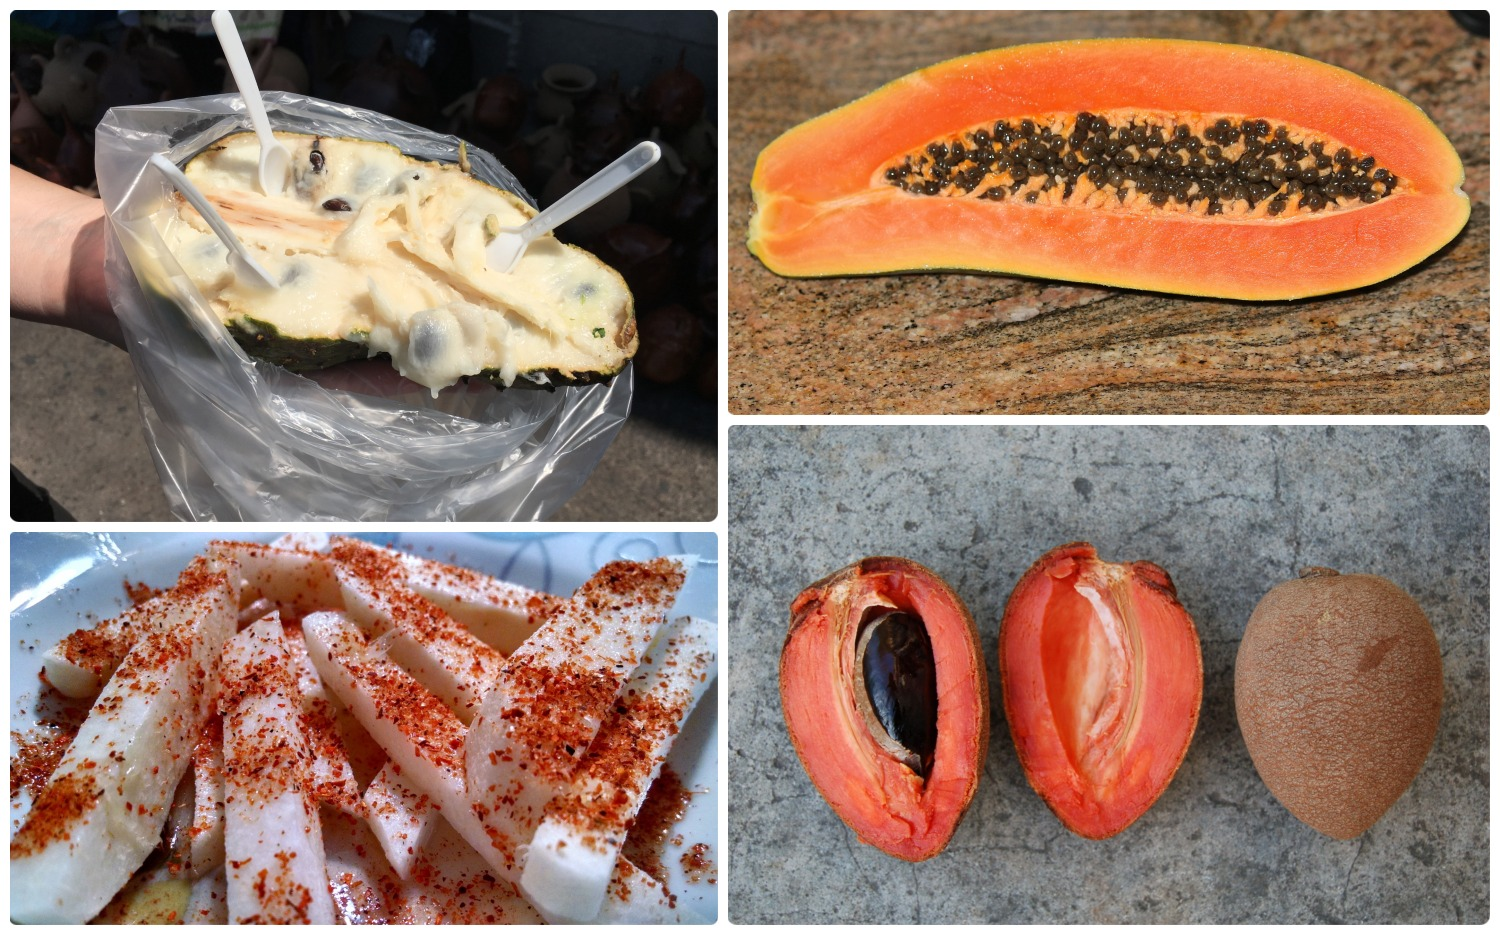 Clockwise (from the top left): Guanabana purchased from a tianguis (street market), a papaya, a mamey, jicama with chili powder.